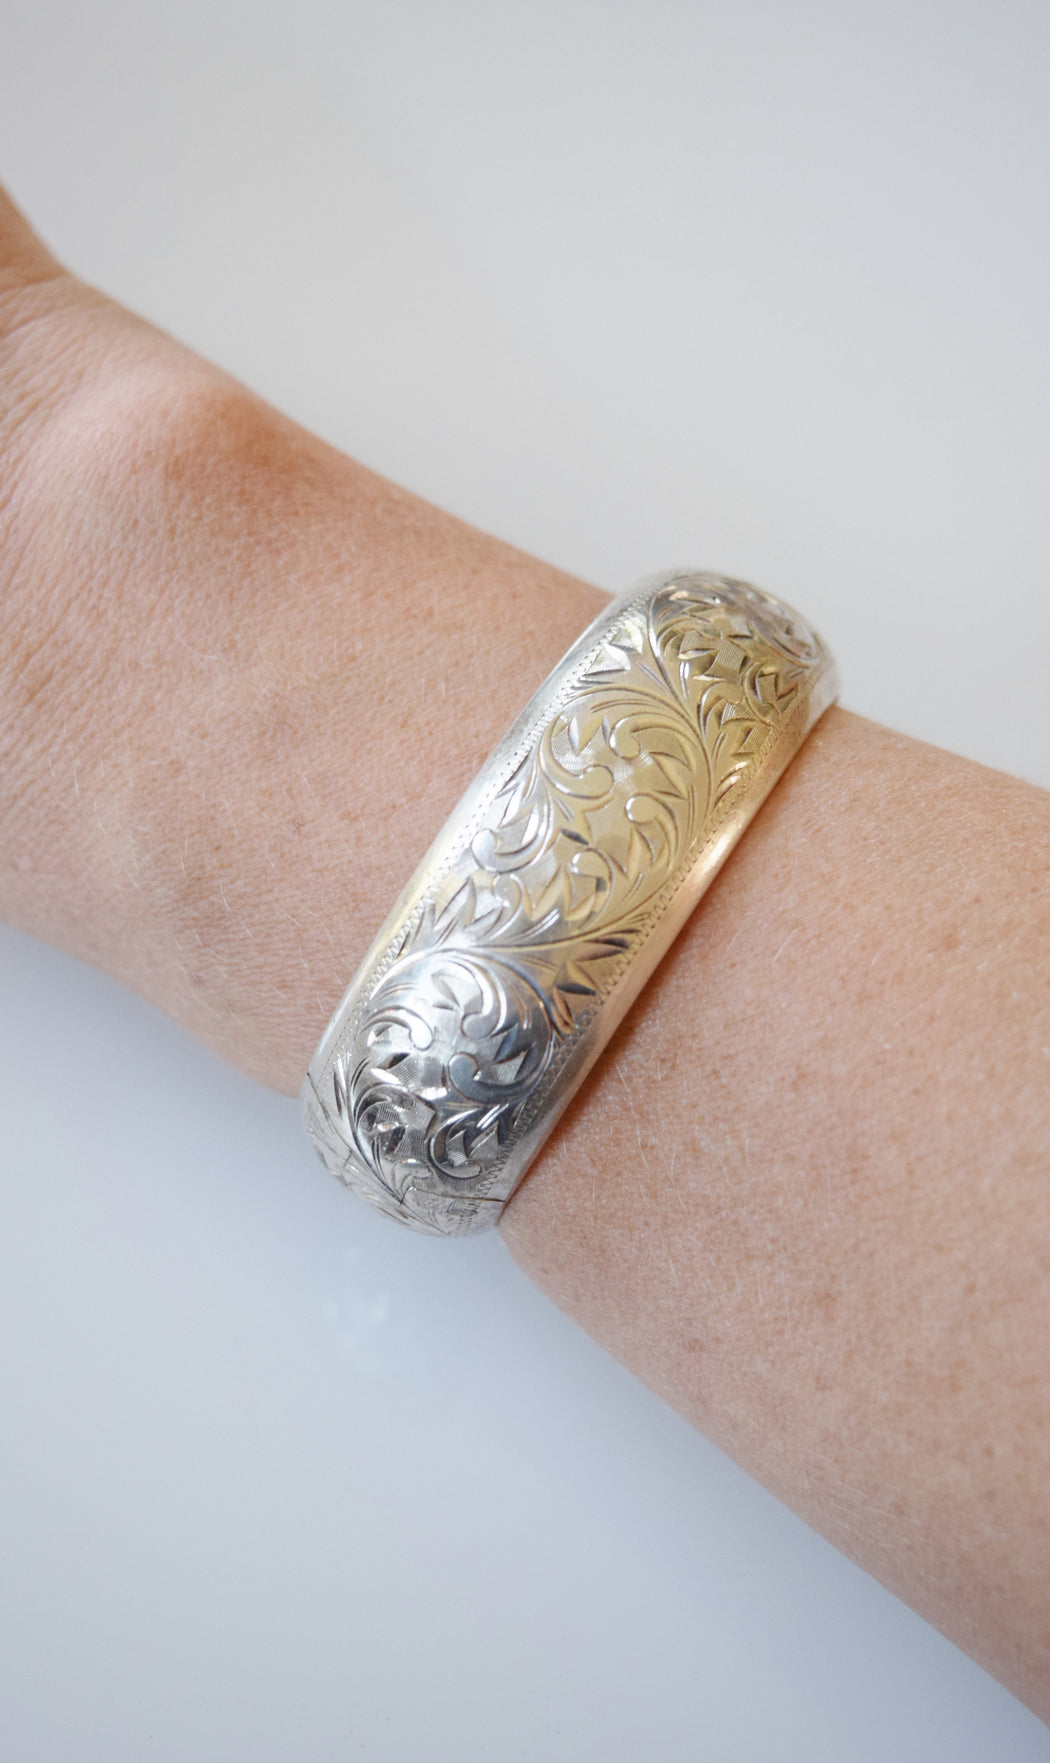 Etched Victorian Revival Sterling Silver Bangle